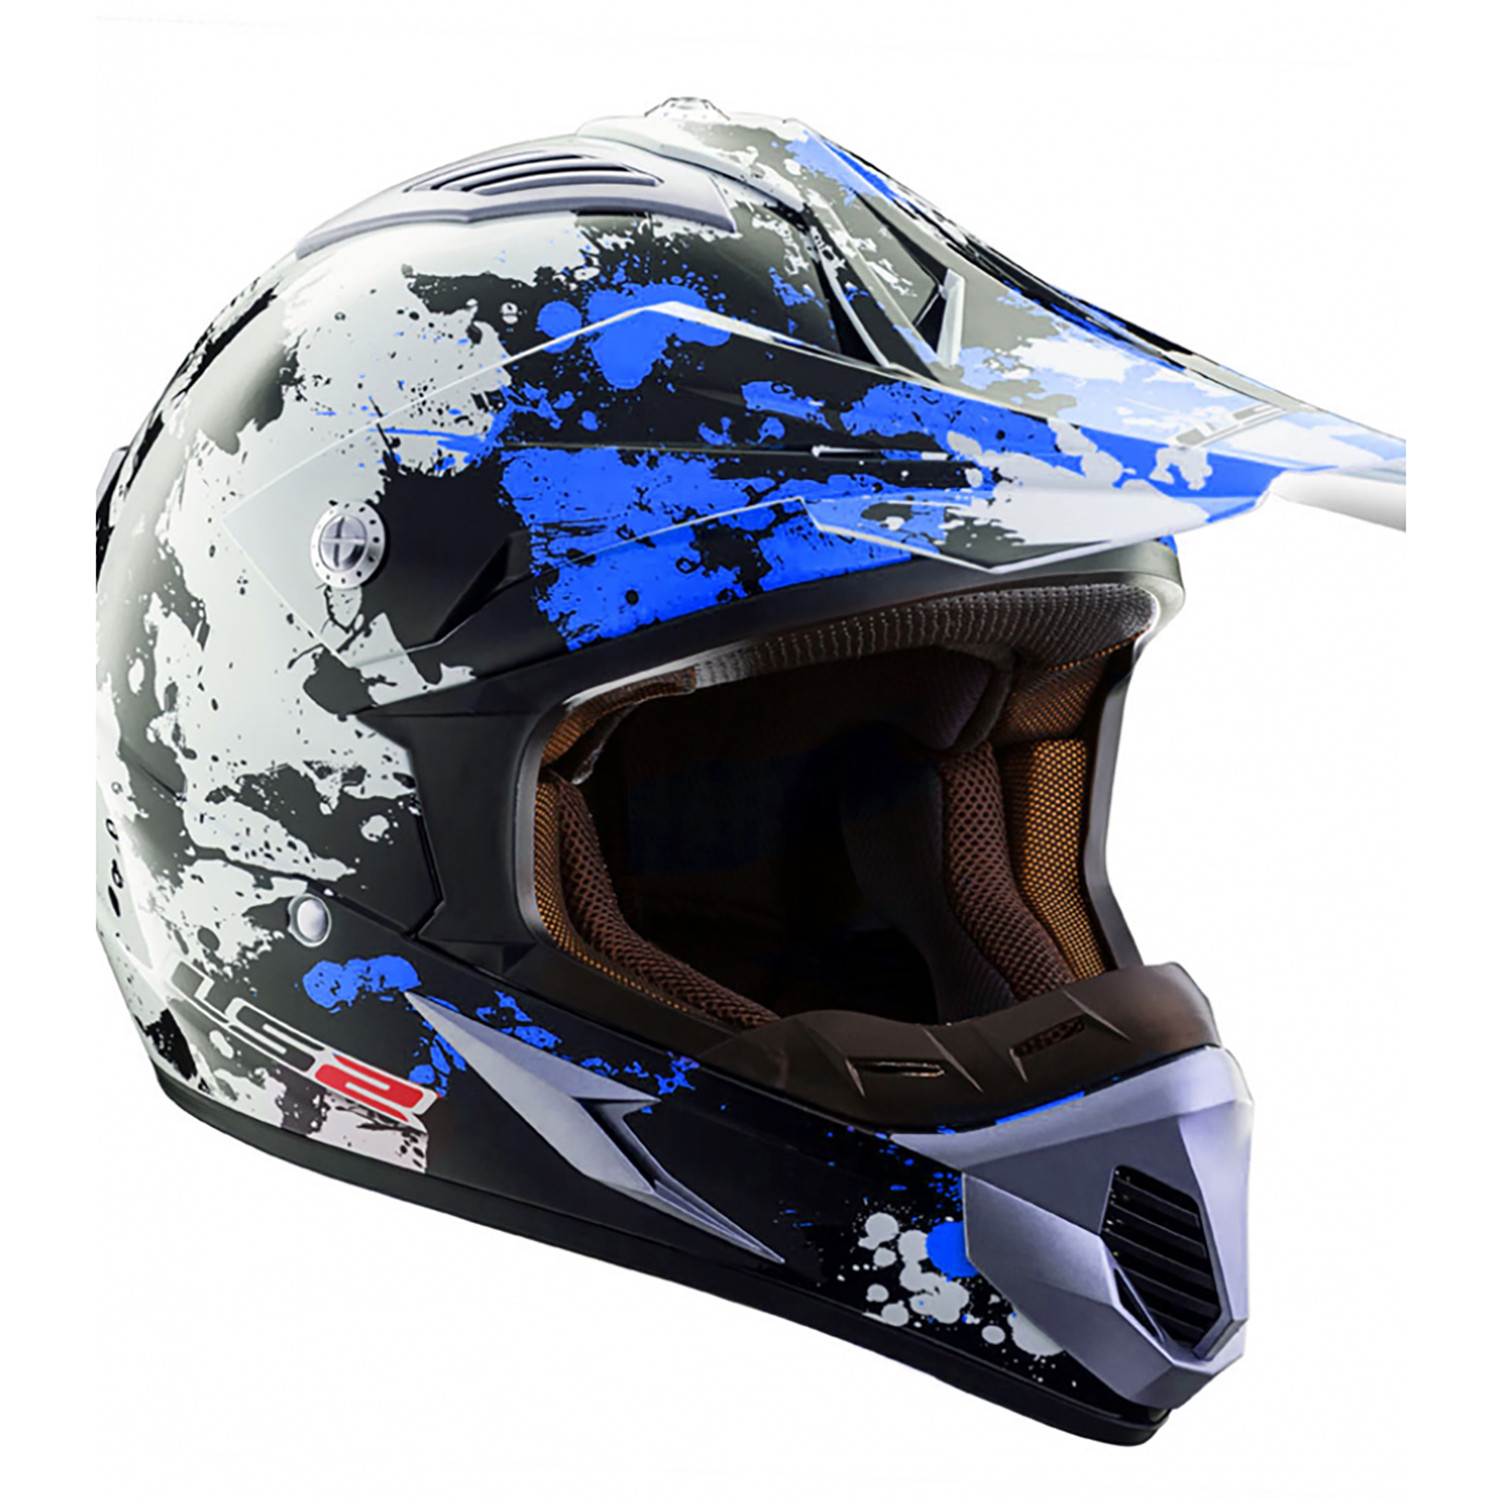 Casco Cross LS2 MX 433 Blast Azul